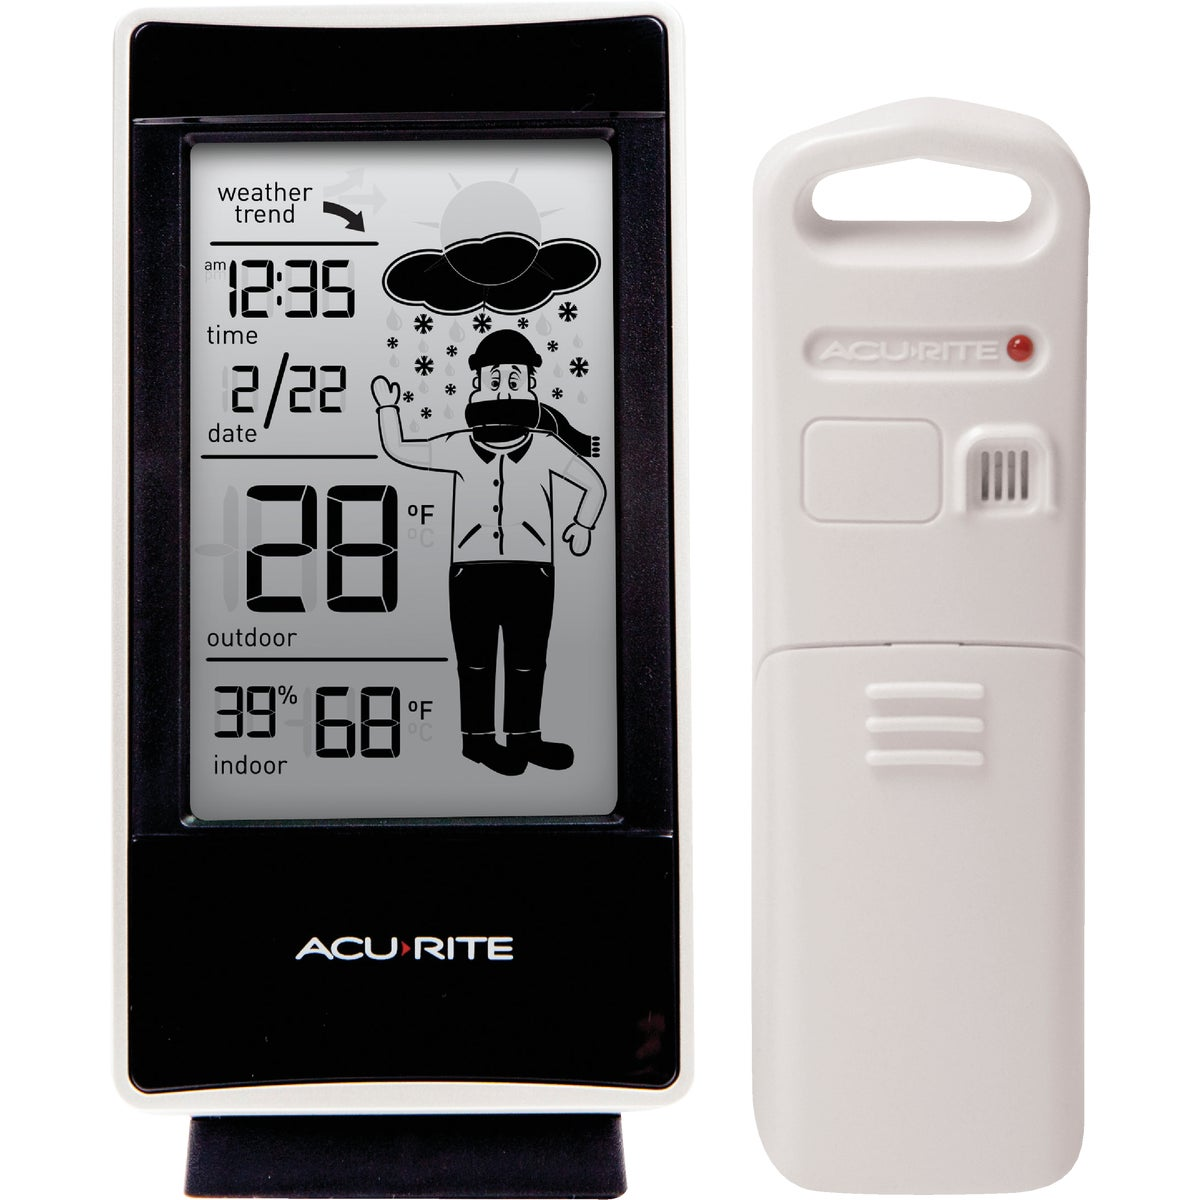 Item 653064, The AcuRite What-to-Wear weather station uses patented Self-Calibrating Technology to provide your personal forecast of 12 to 24 hour weather conditions.